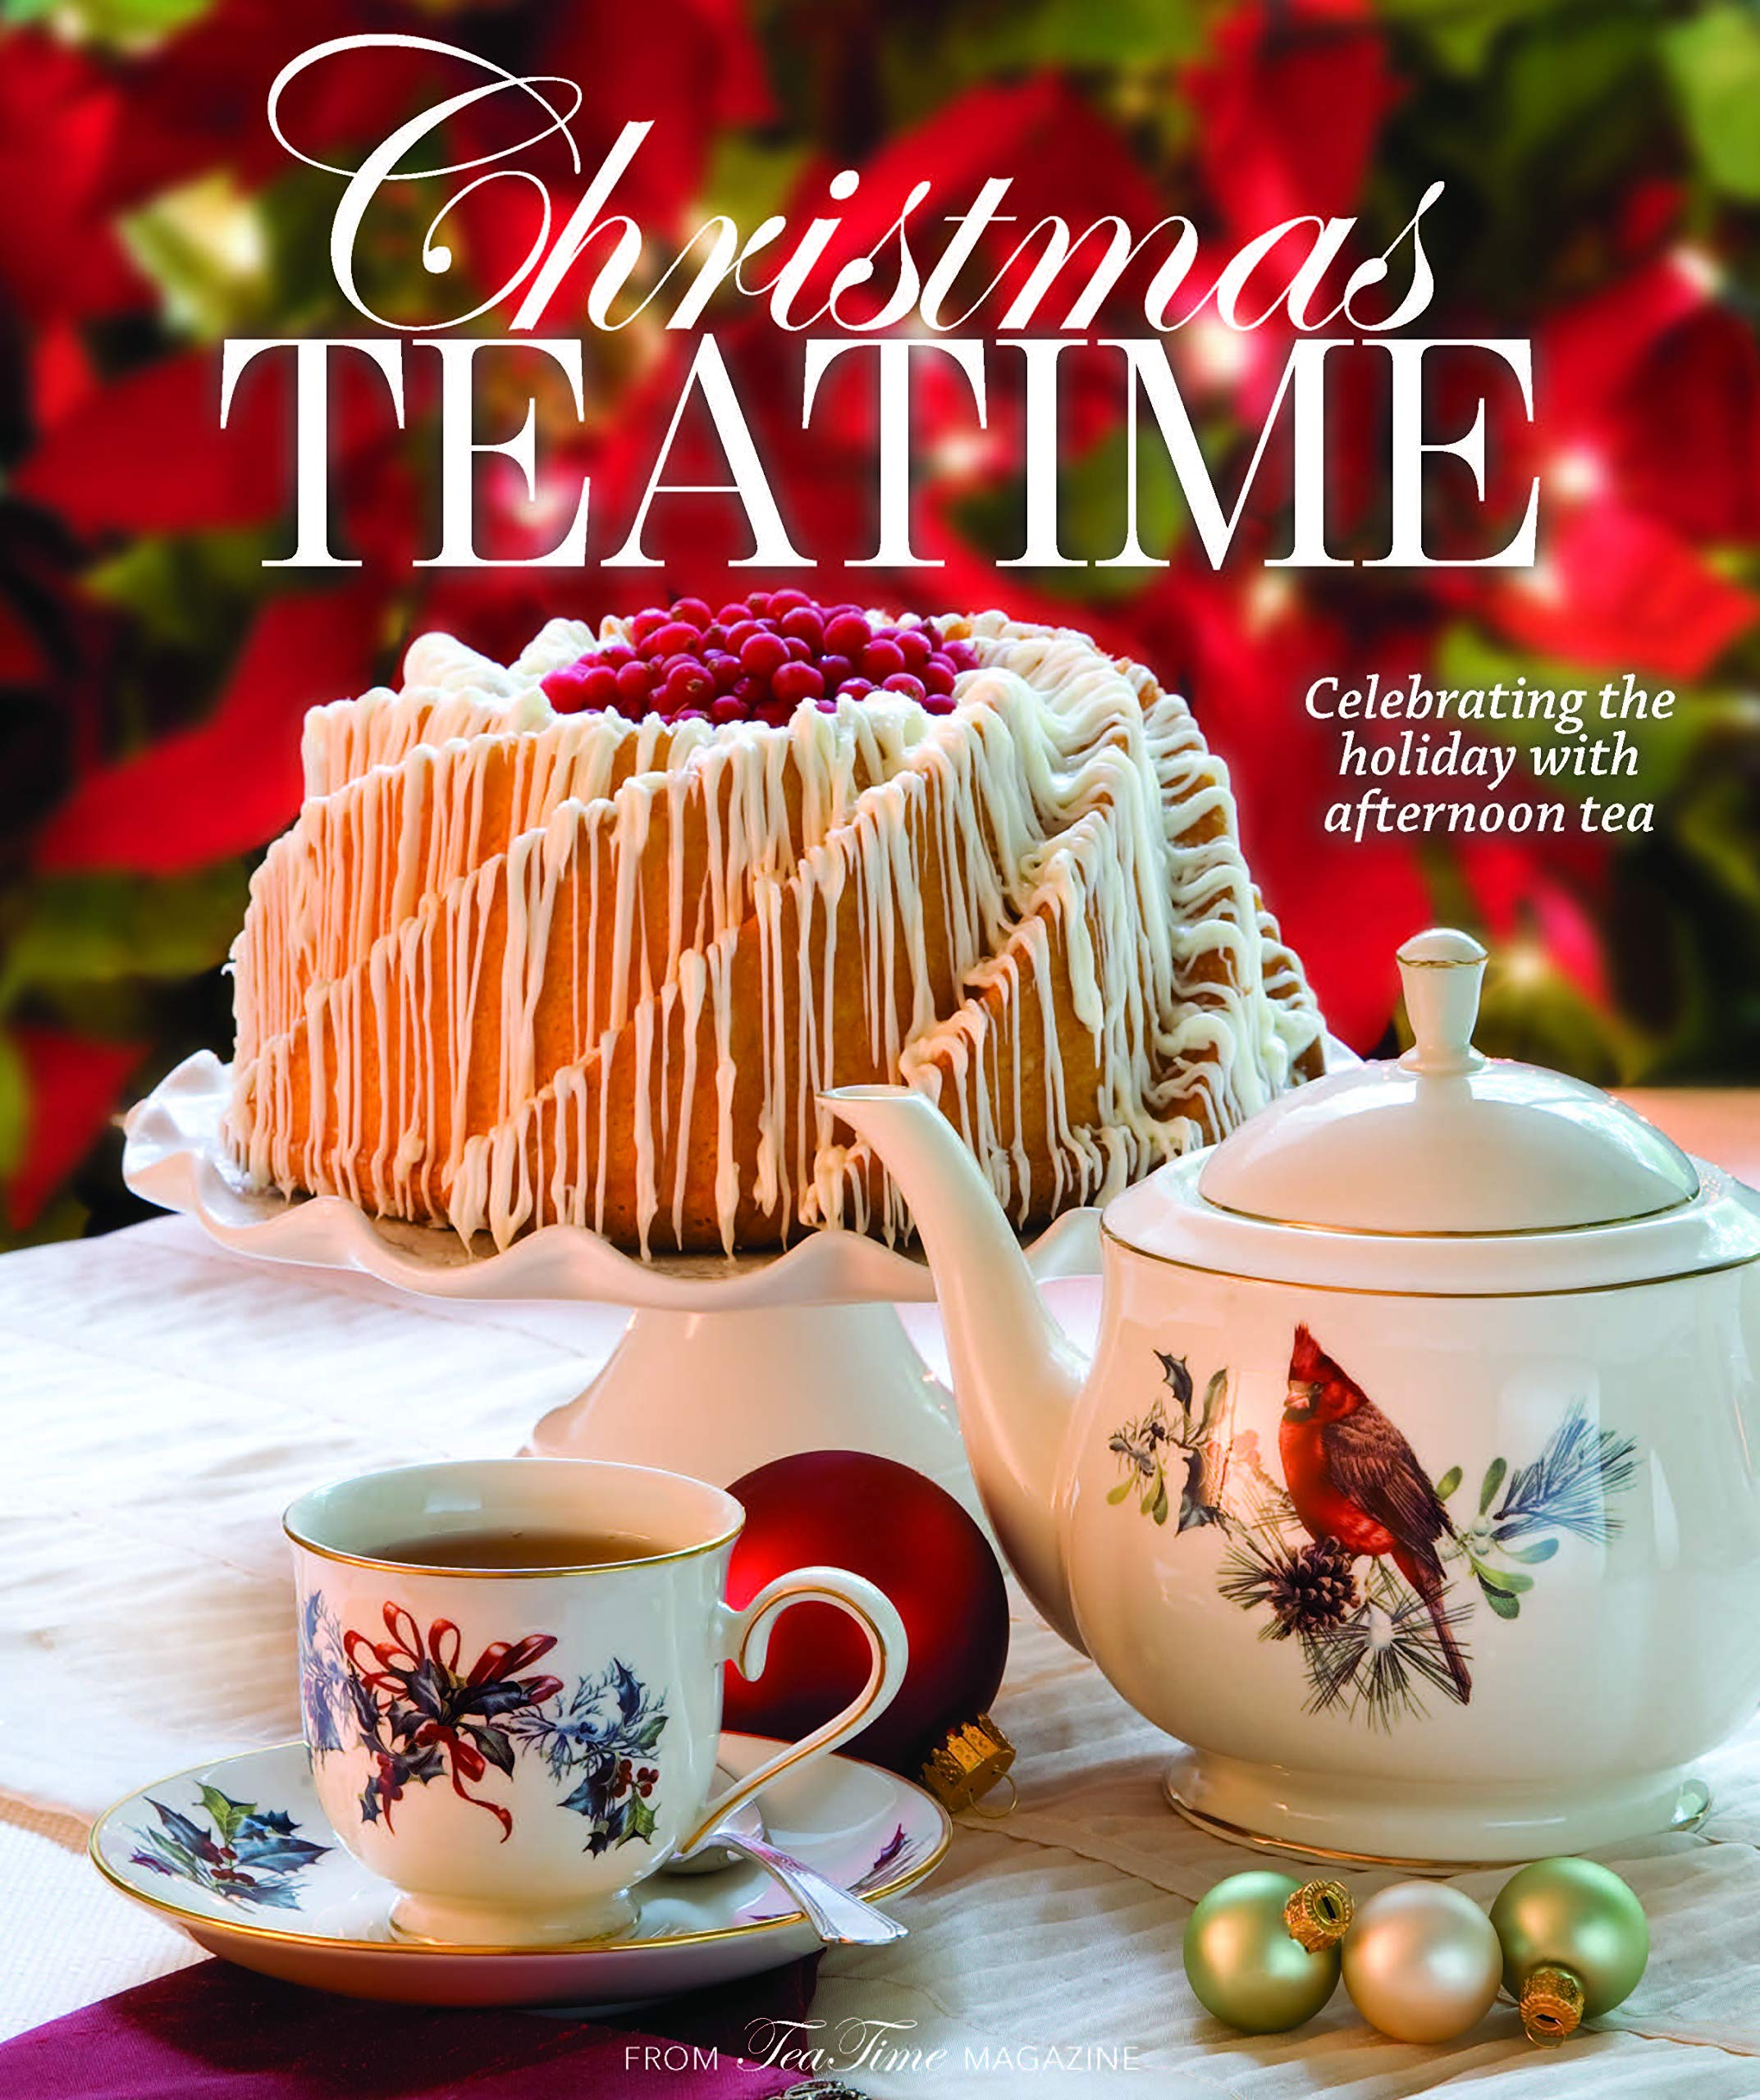 Christmas Teatime: Celebrating the Holiday with Afternoon Tea: Reeves,  Lorna Ables: 9781940772646: Amazon.com: Books